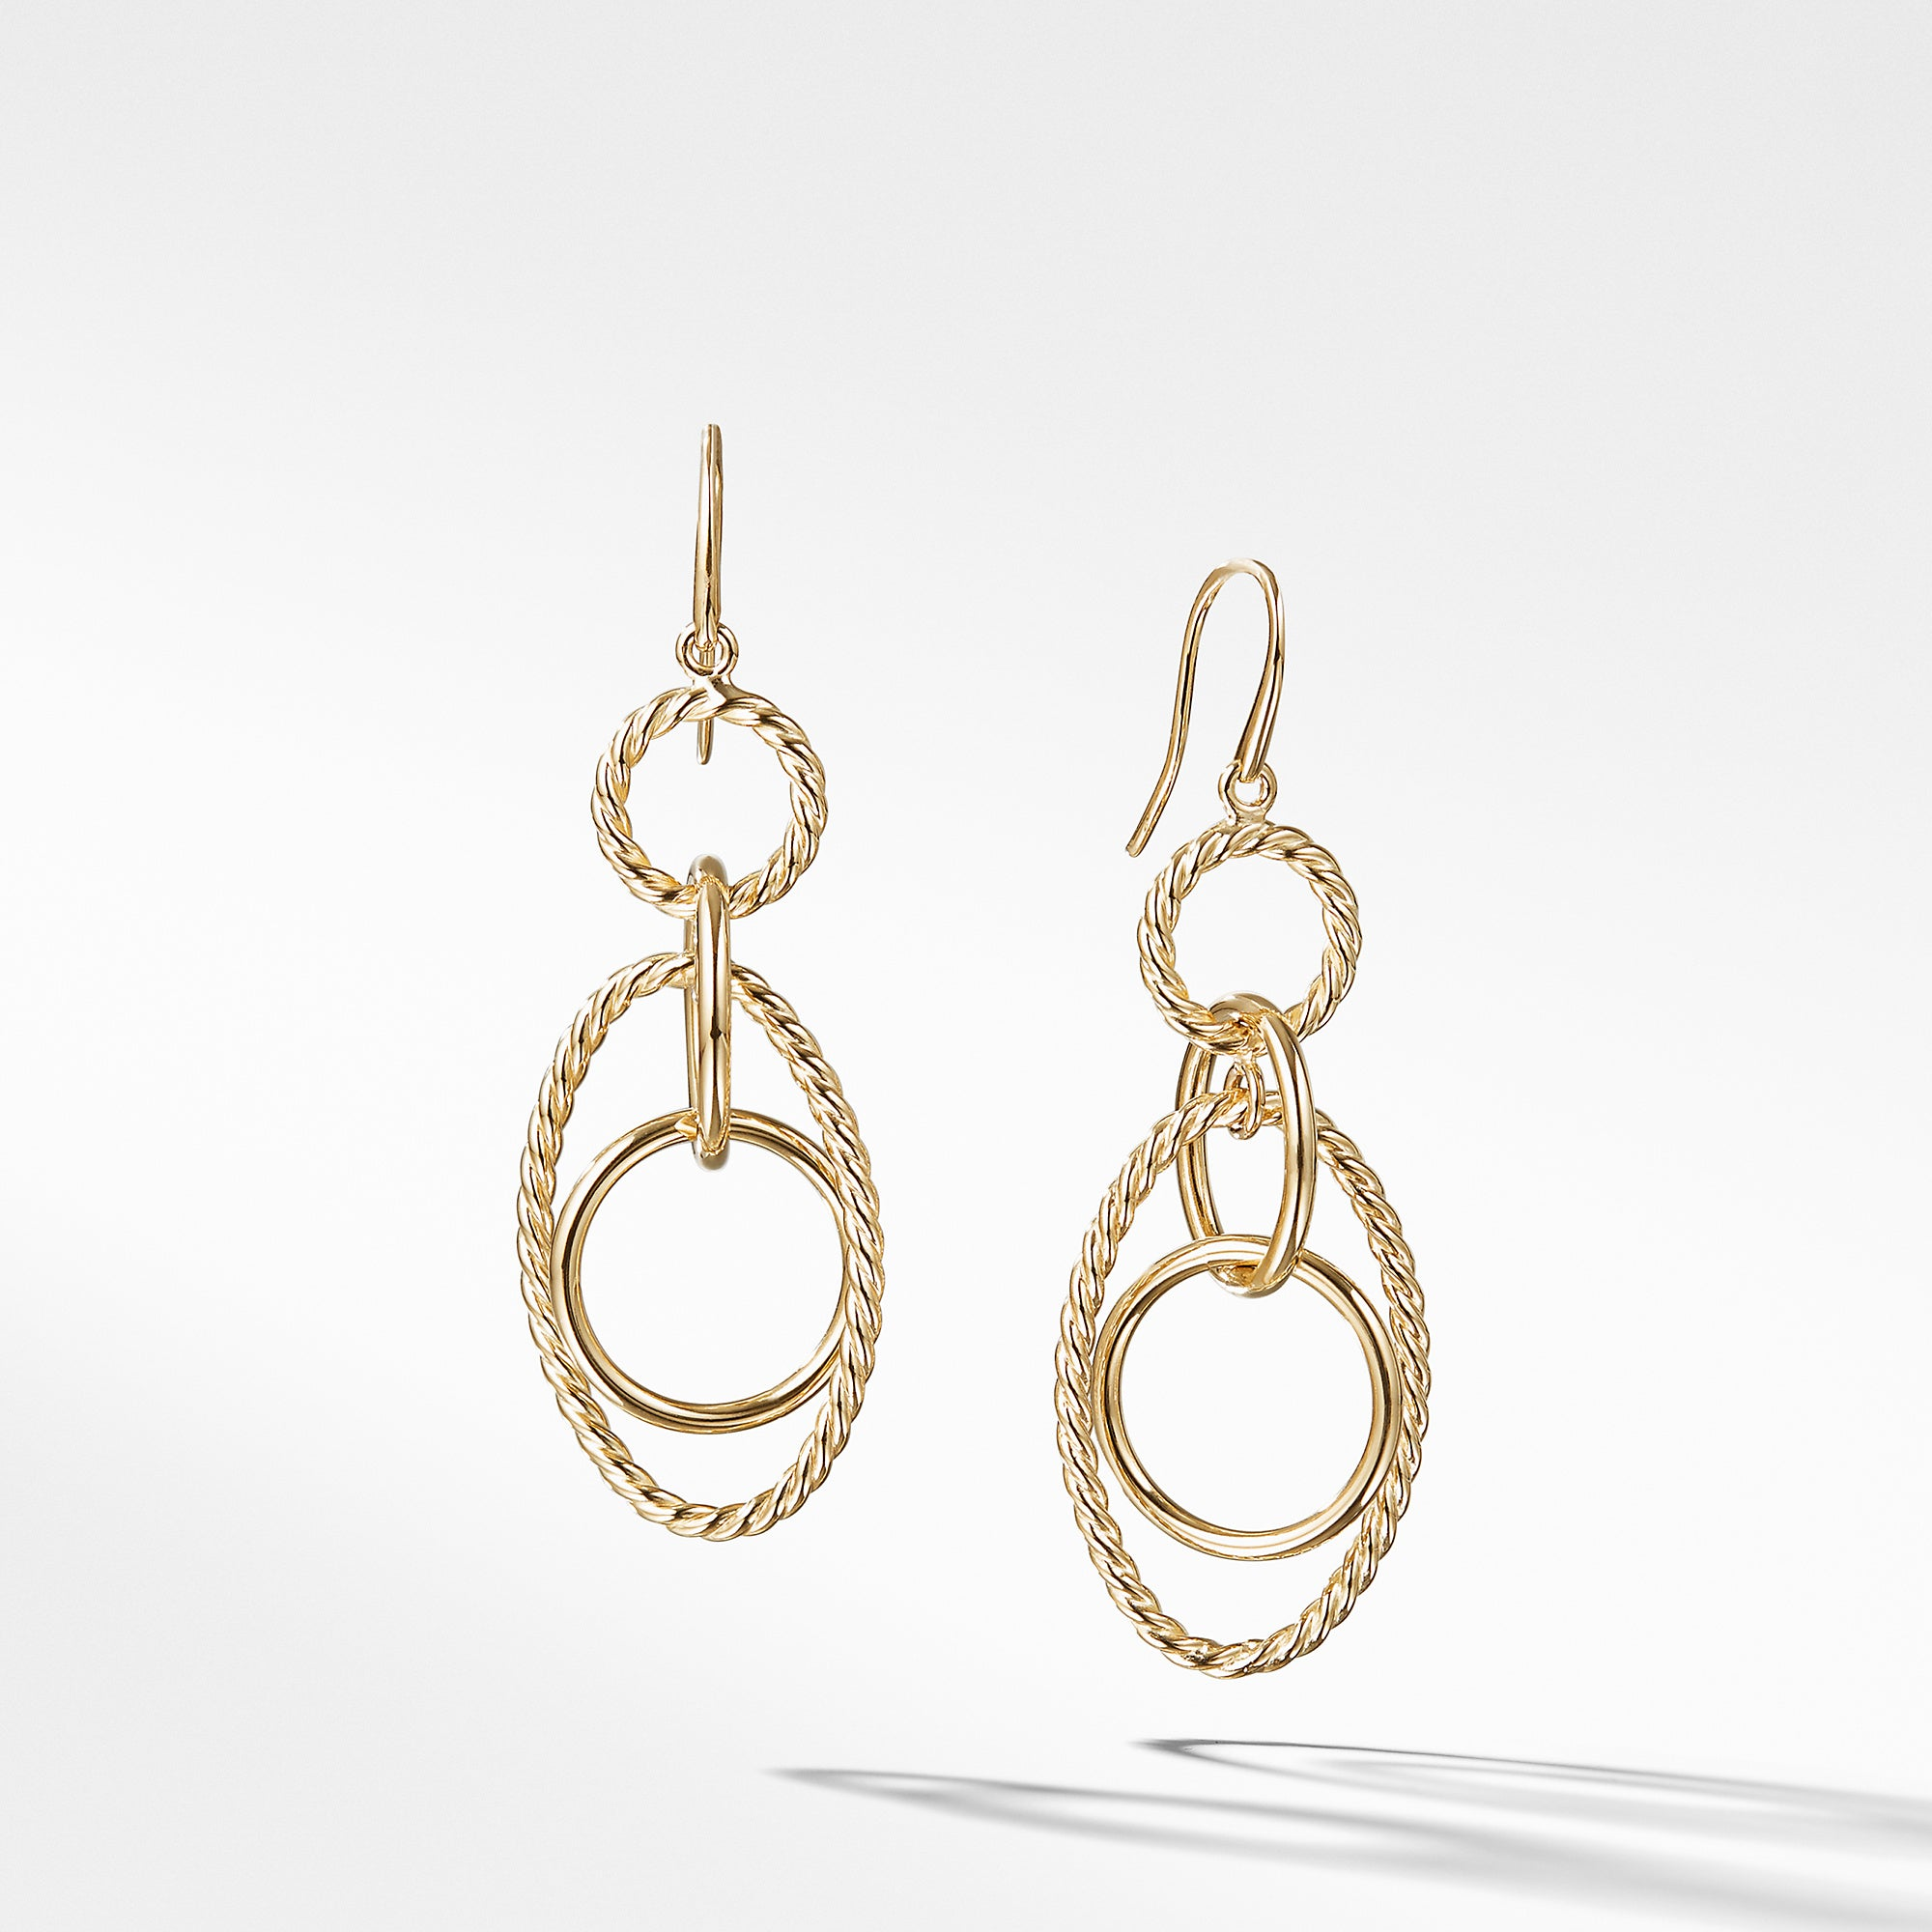 Mobile Small Link Earrings in 18K Yellow Gold